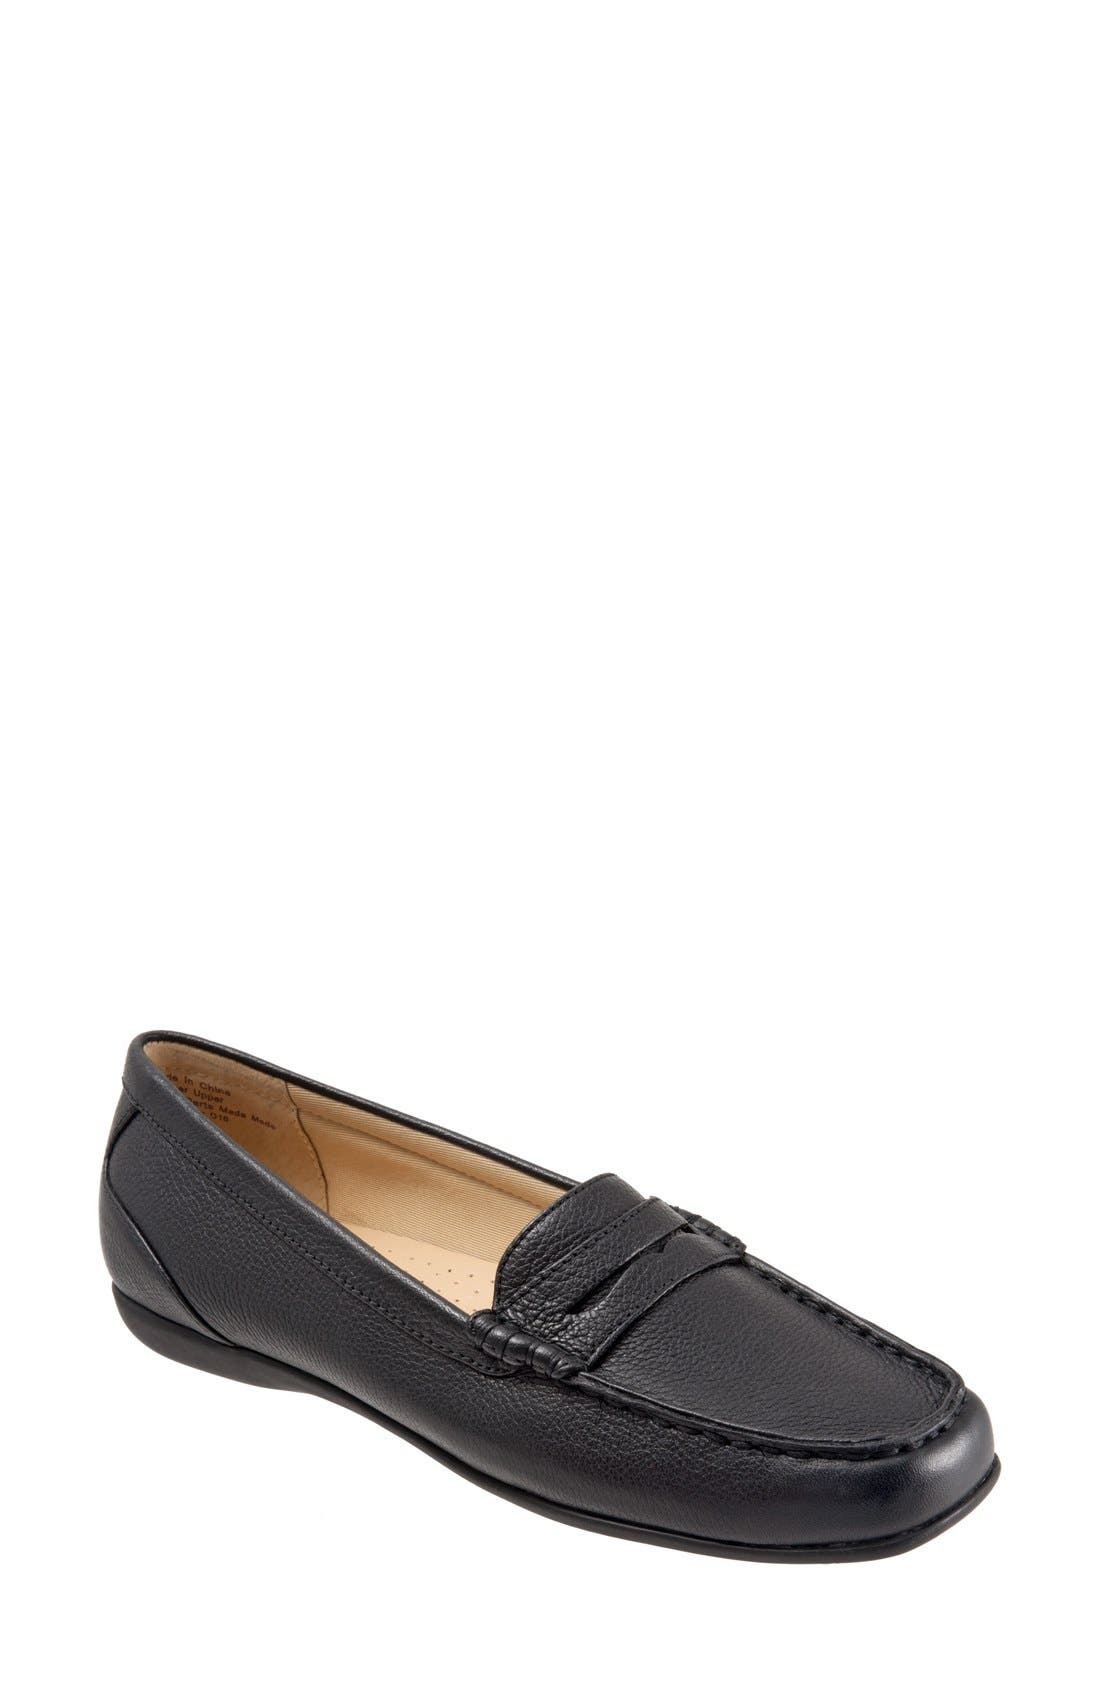 TROTTERS, 'Staci' Penny Loafer, Main thumbnail 1, color, BLACK LEATHER